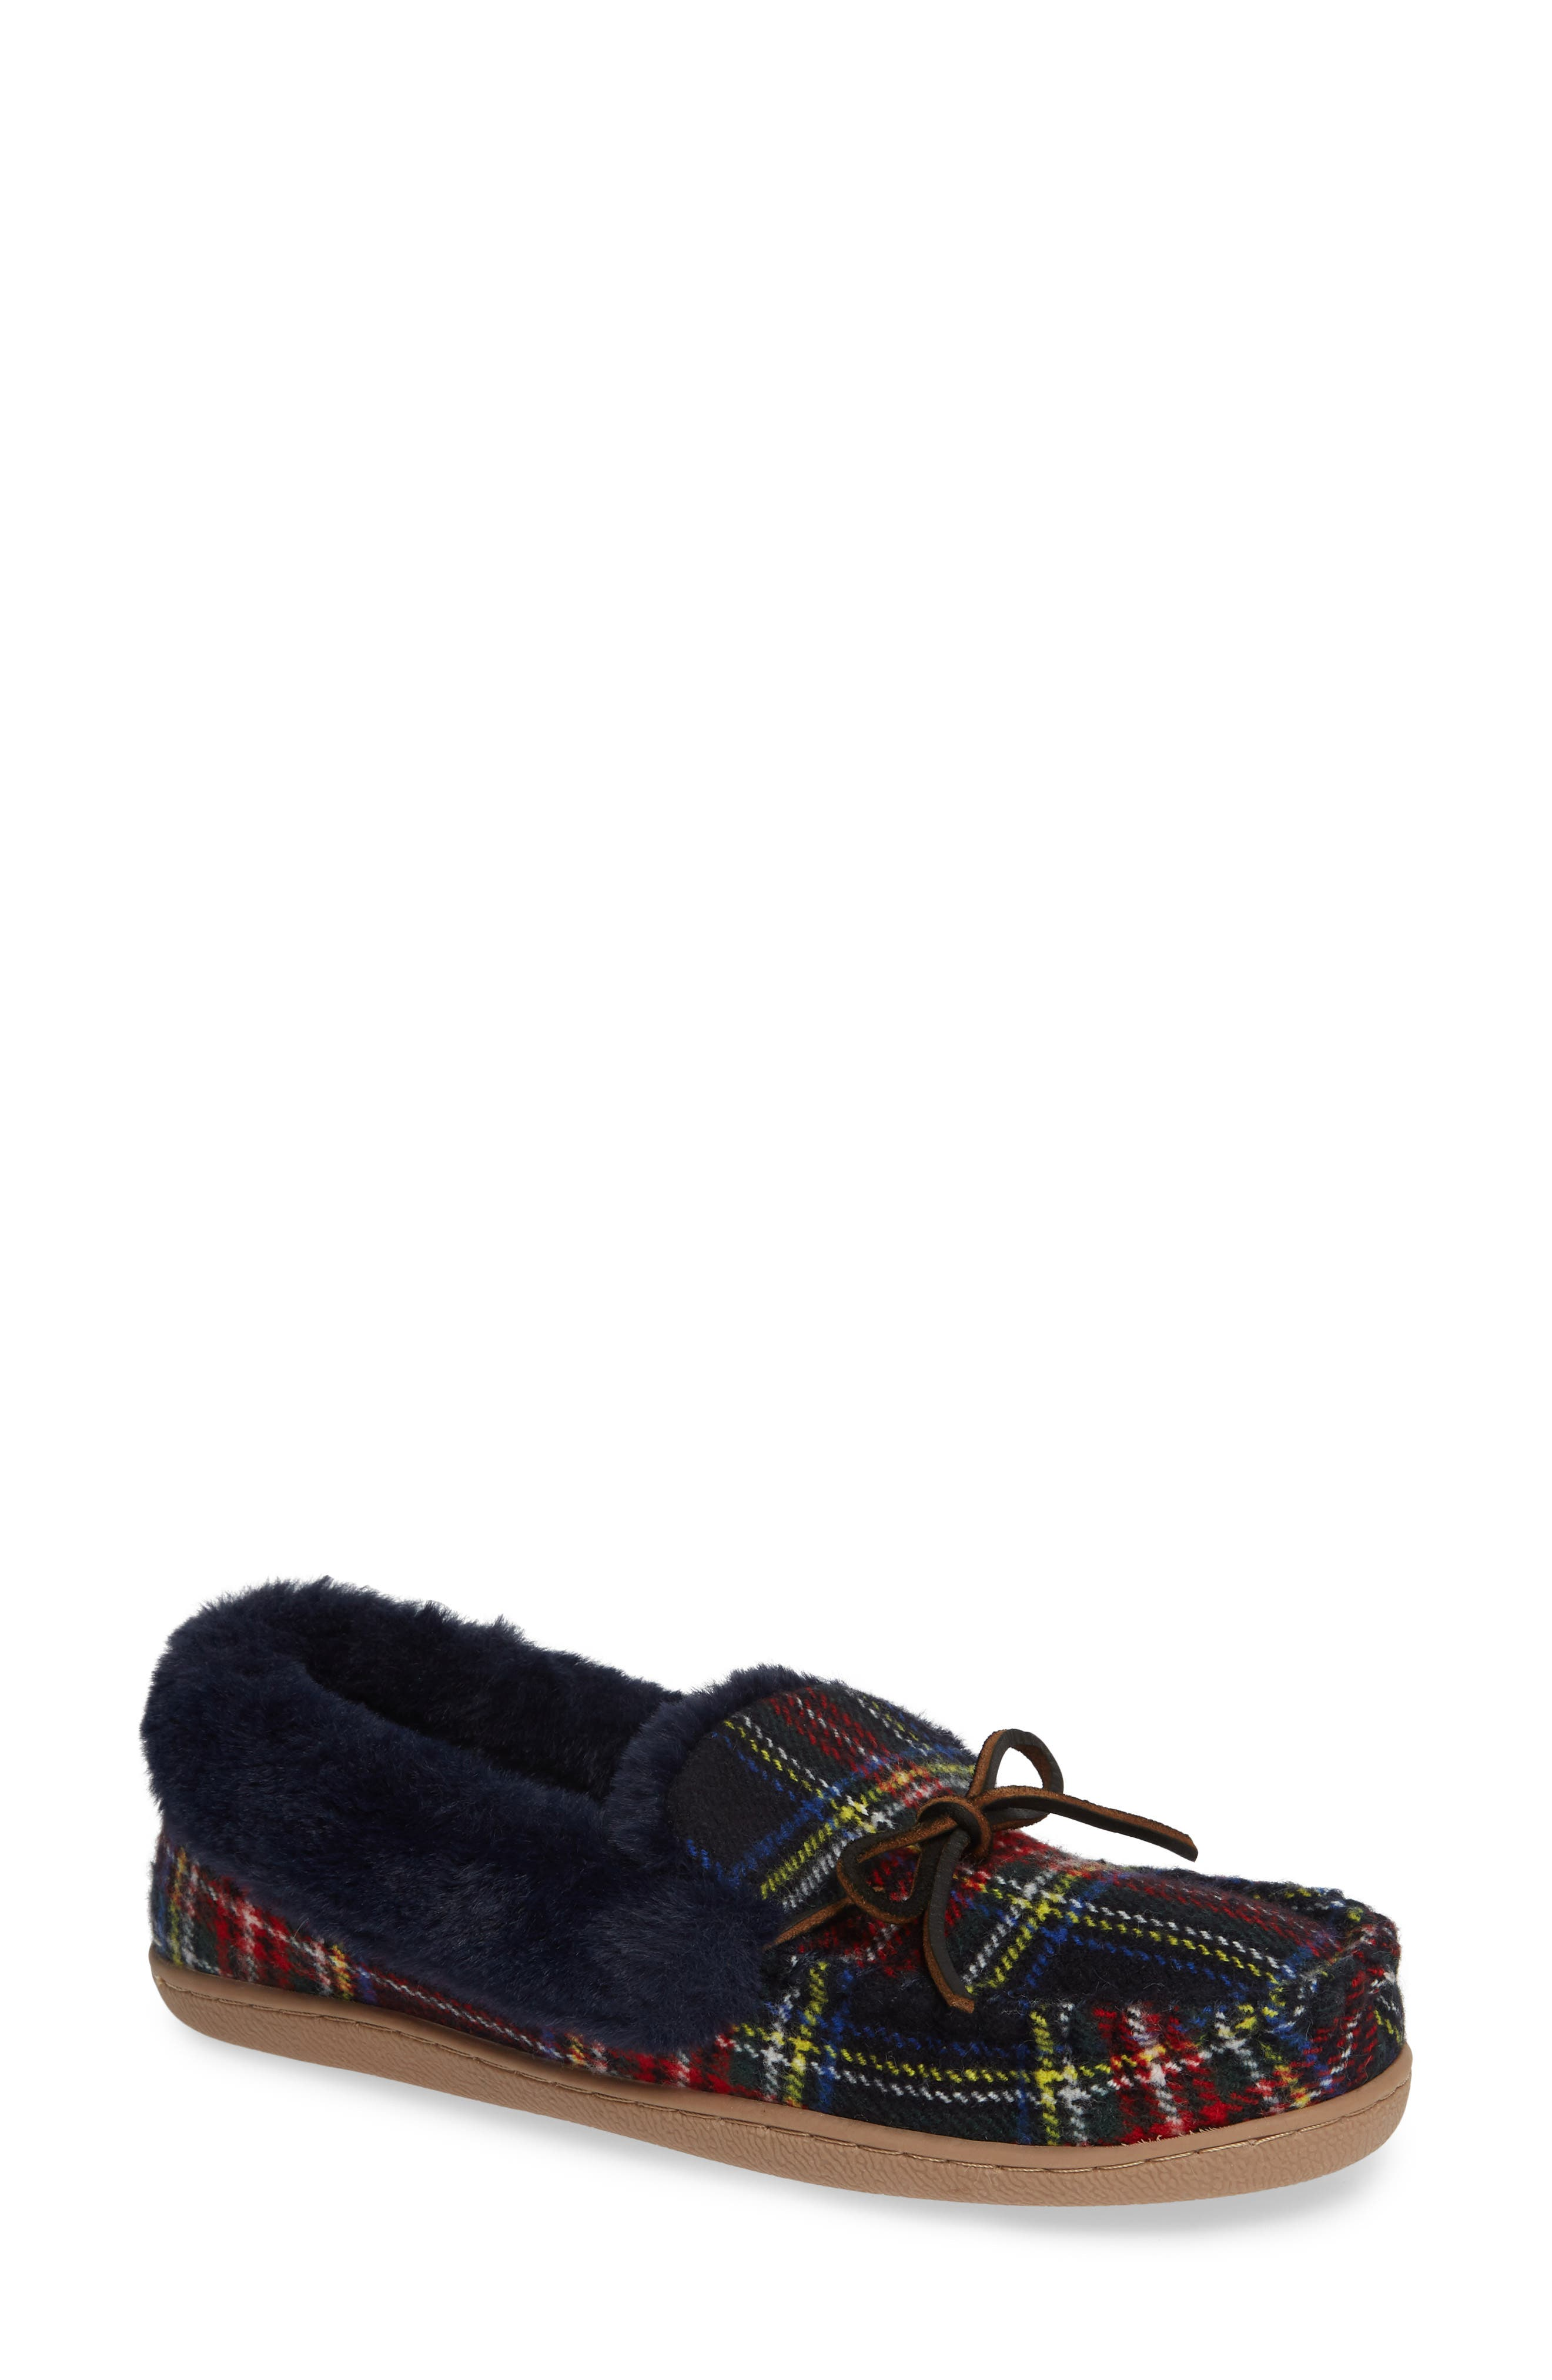 Poppy Moc Slipper,                         Main,                         color, NAVY/ RED PLAID FABRIC